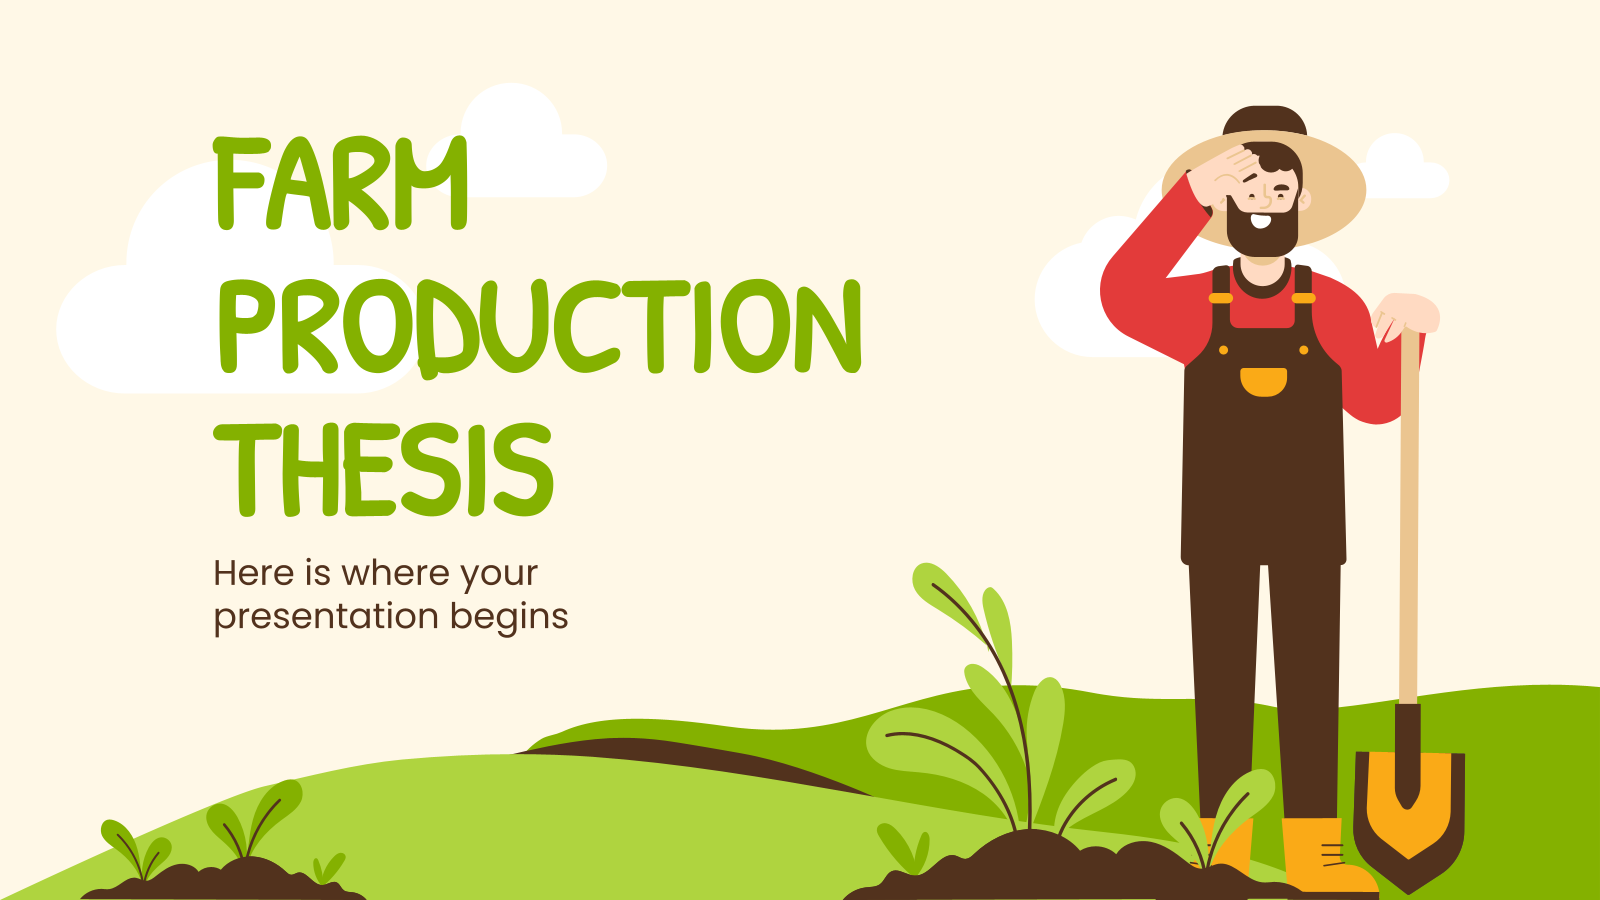 Farm Production Thesis presentation template